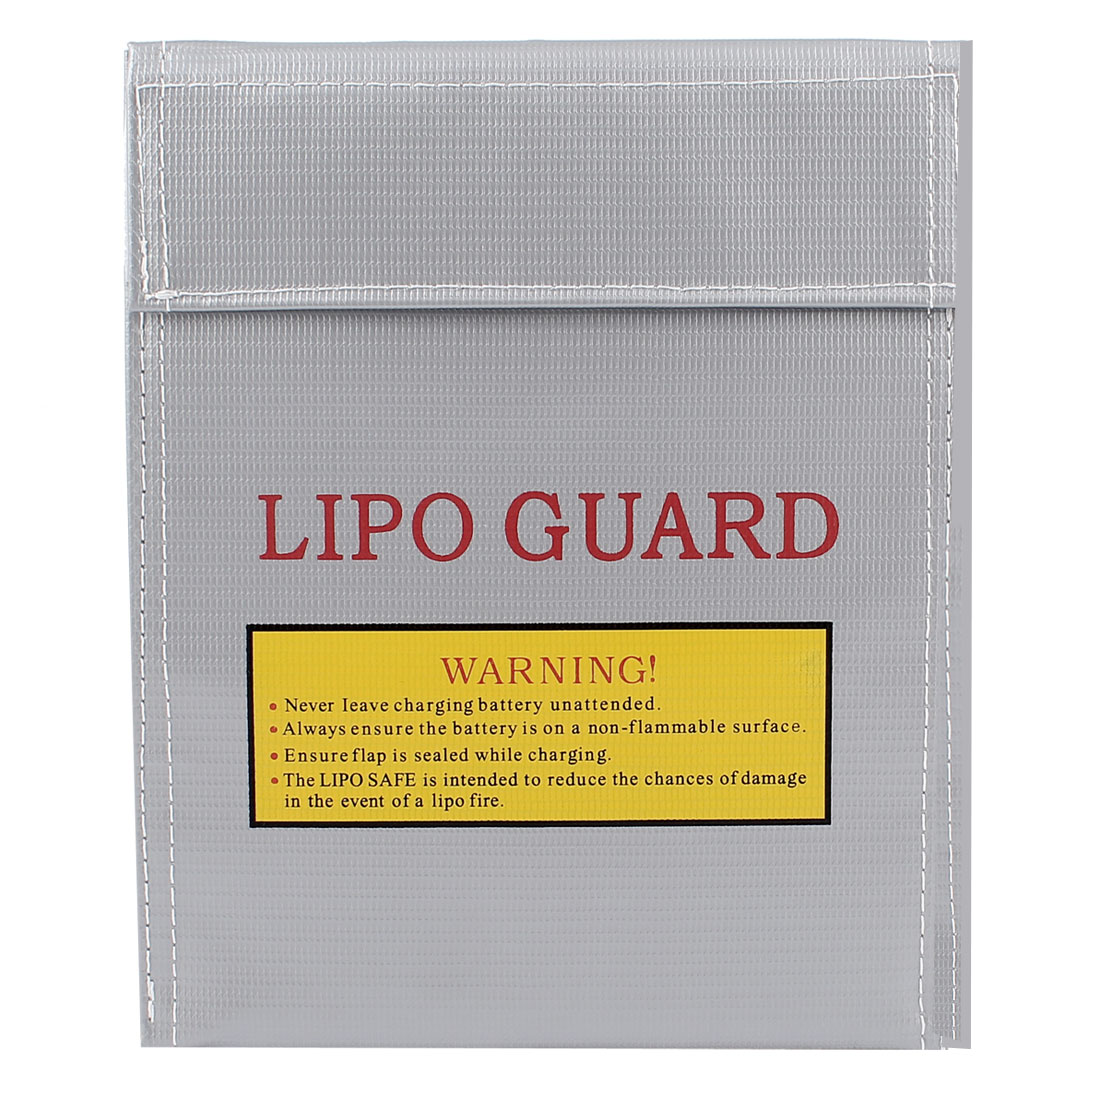 30cm x 23cm RC LiPo Battery Safety Guard Fireproof Charging Bag Silver Gray